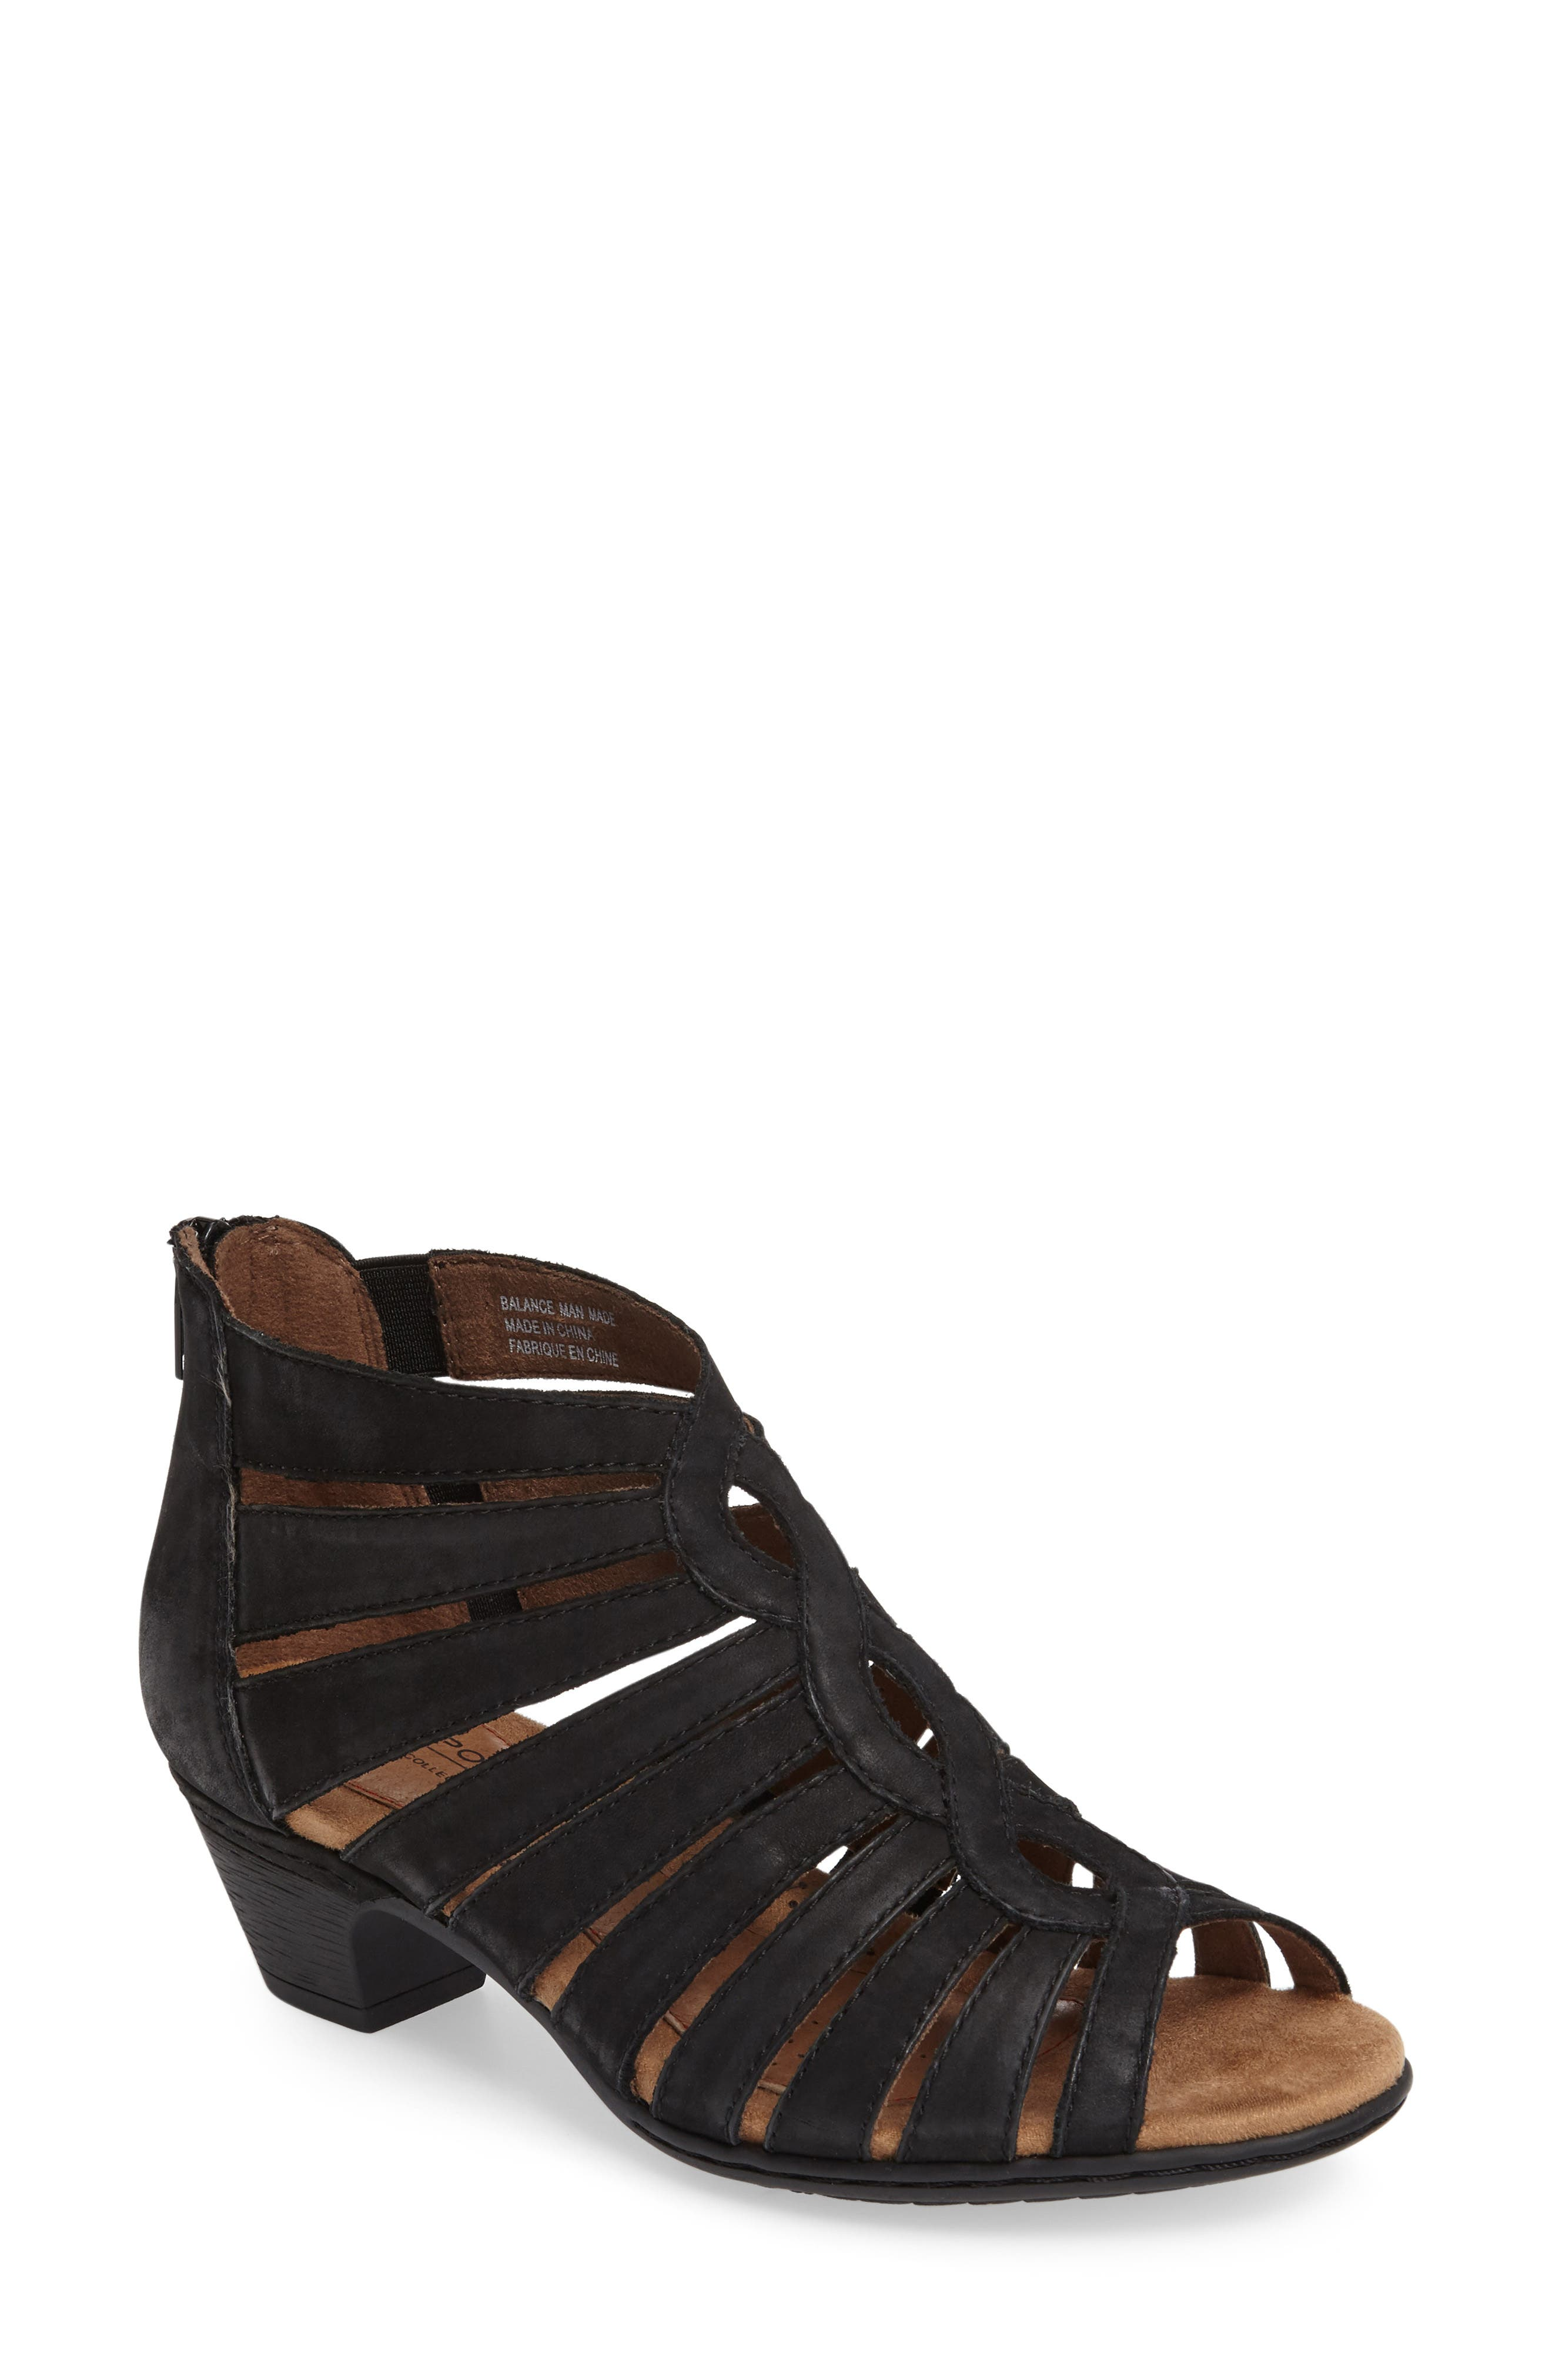 ROCKPORT COBB HILL, Abbott Caged Sandal, Main thumbnail 1, color, BLACK LEATHER